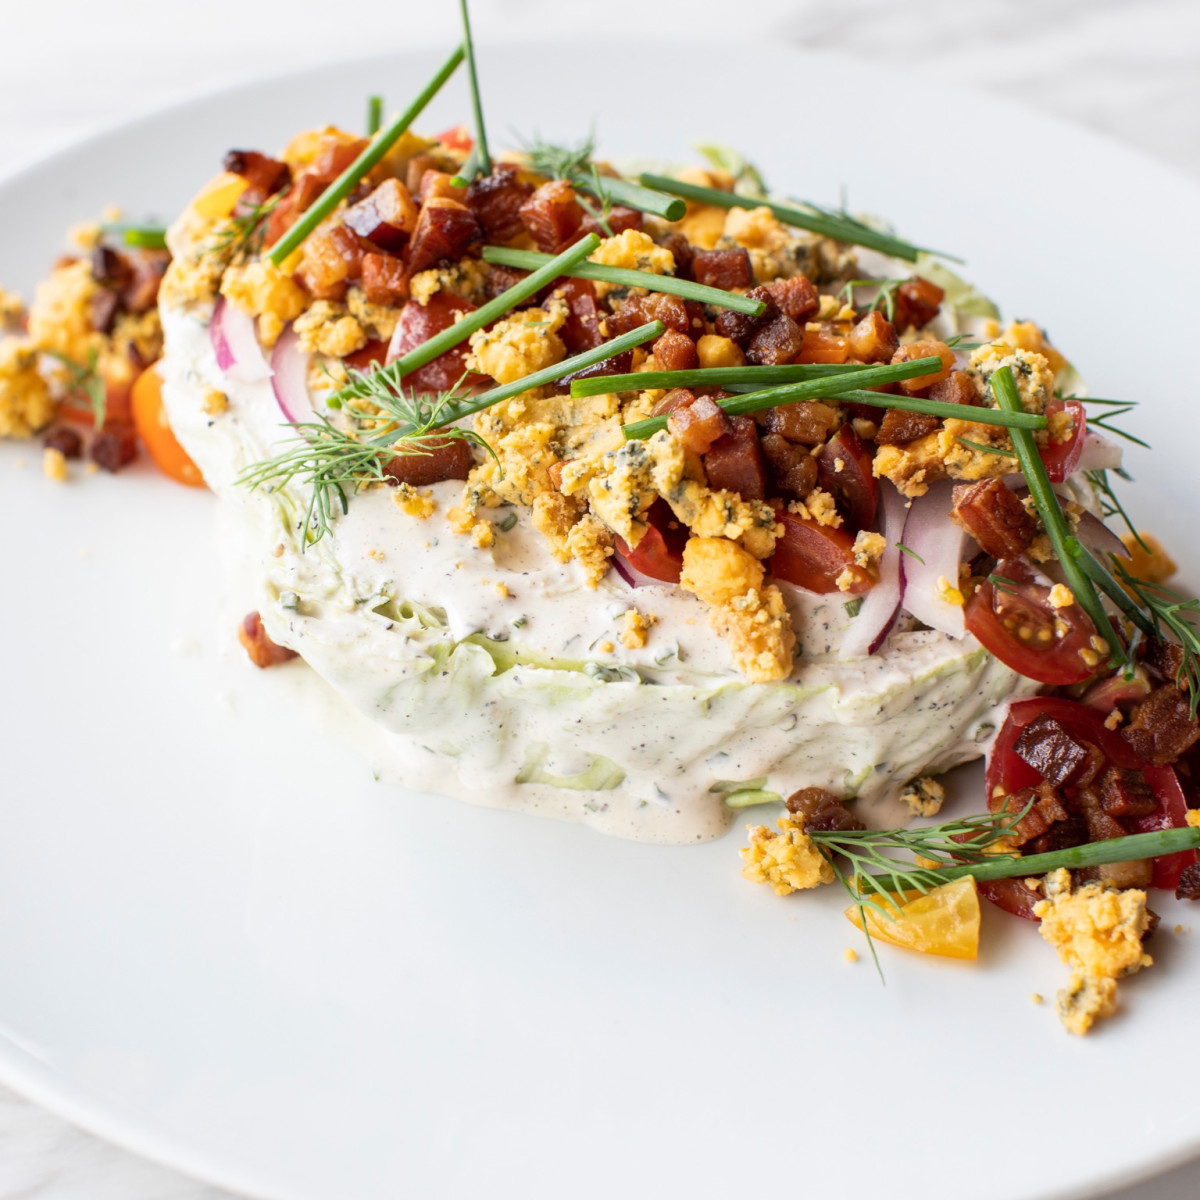 Georgia James steakhouse slab wedge salad